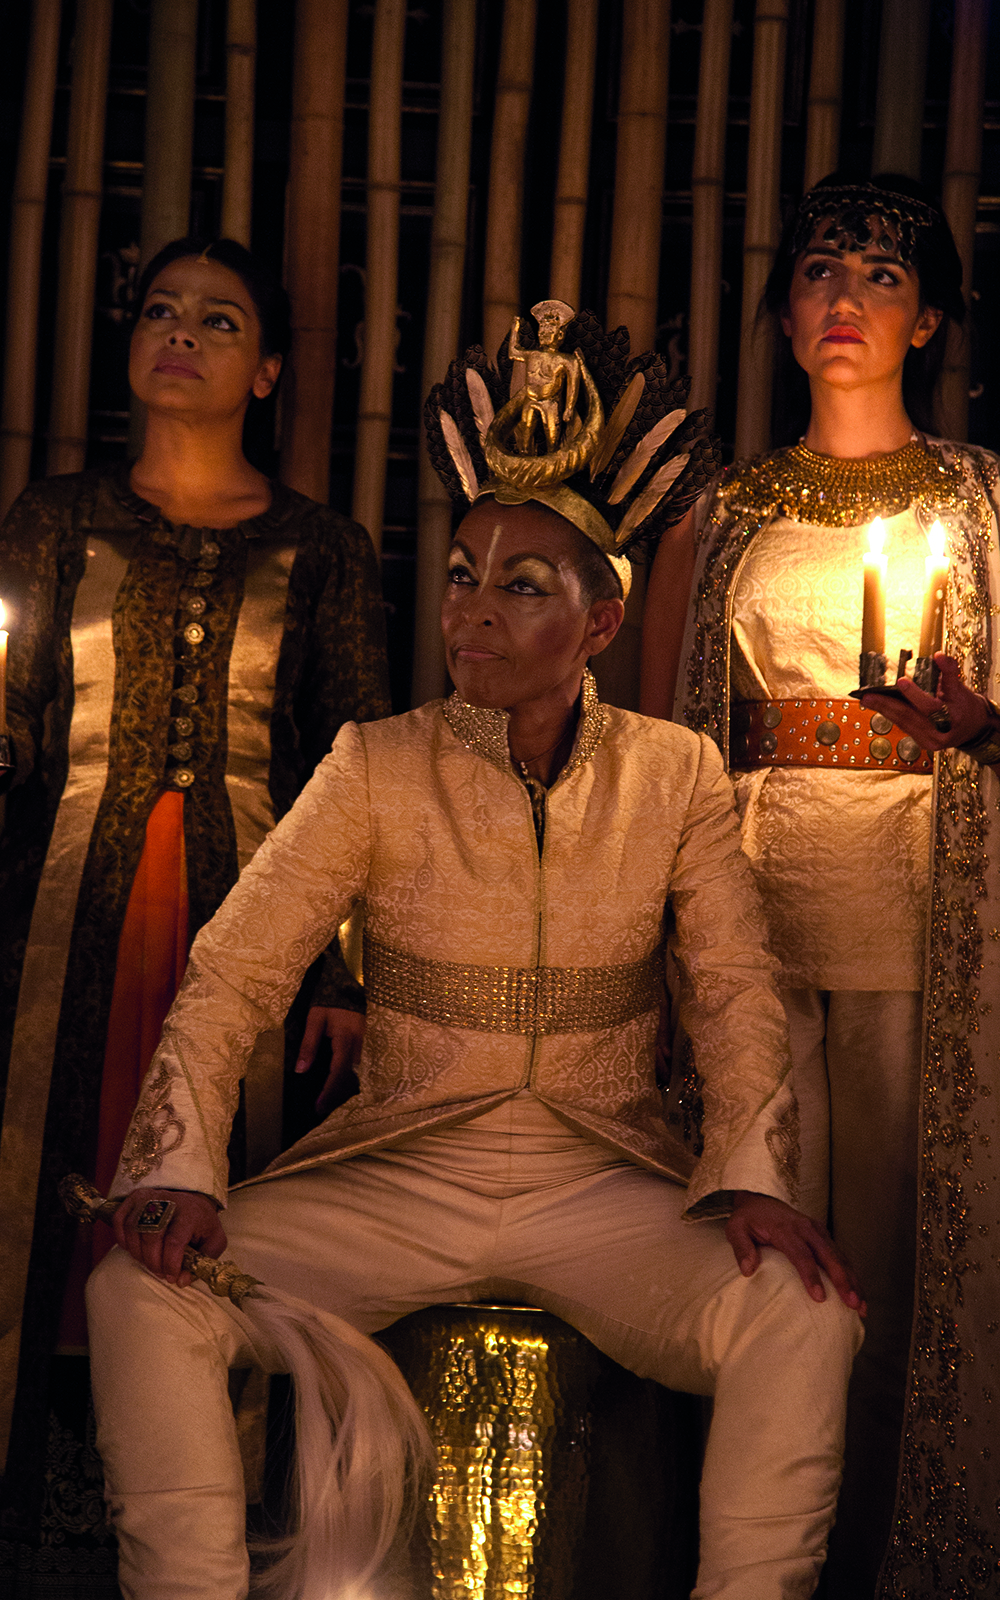 An actor in a white suit sits on a throne wearing a gold crown